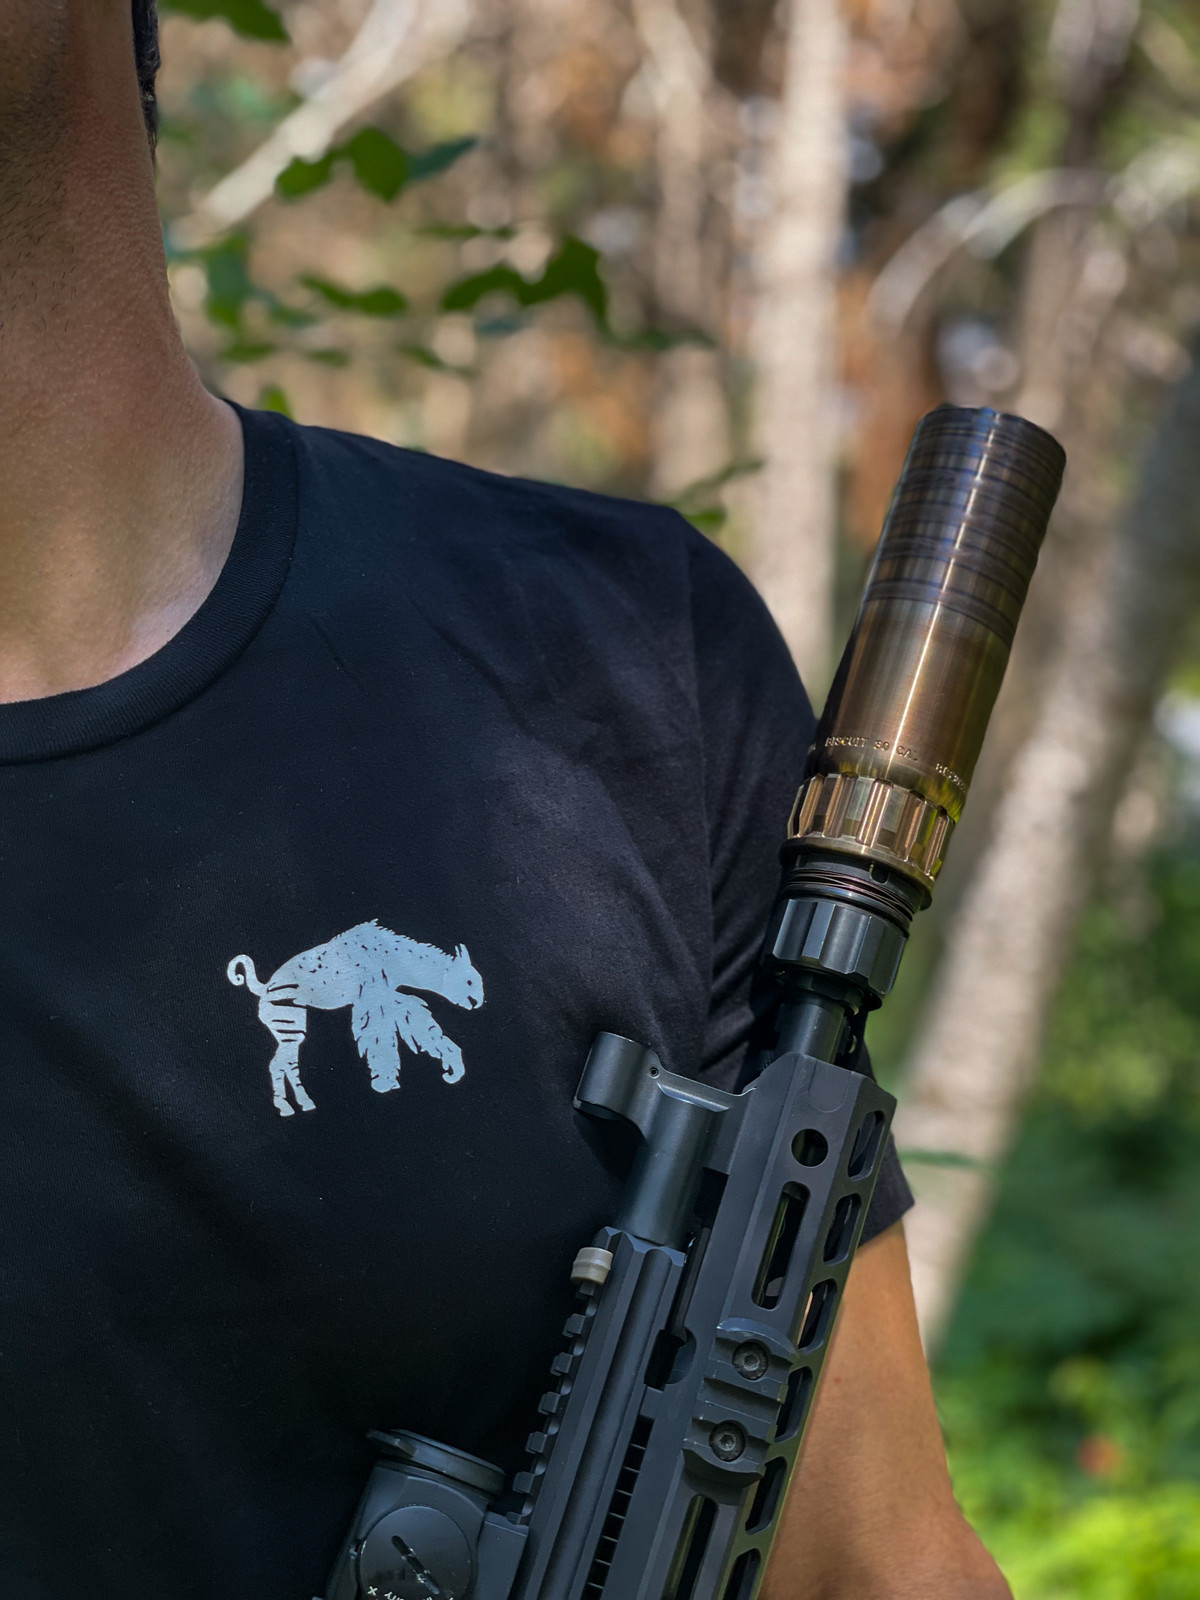 Picture of the Abel Company branded shirt being worn in the forest. The front of the shirt is in view with the focus on the Abel Creature. The person in the picture is holding up a rifle that has an Abel Company suppressor mounted on it.